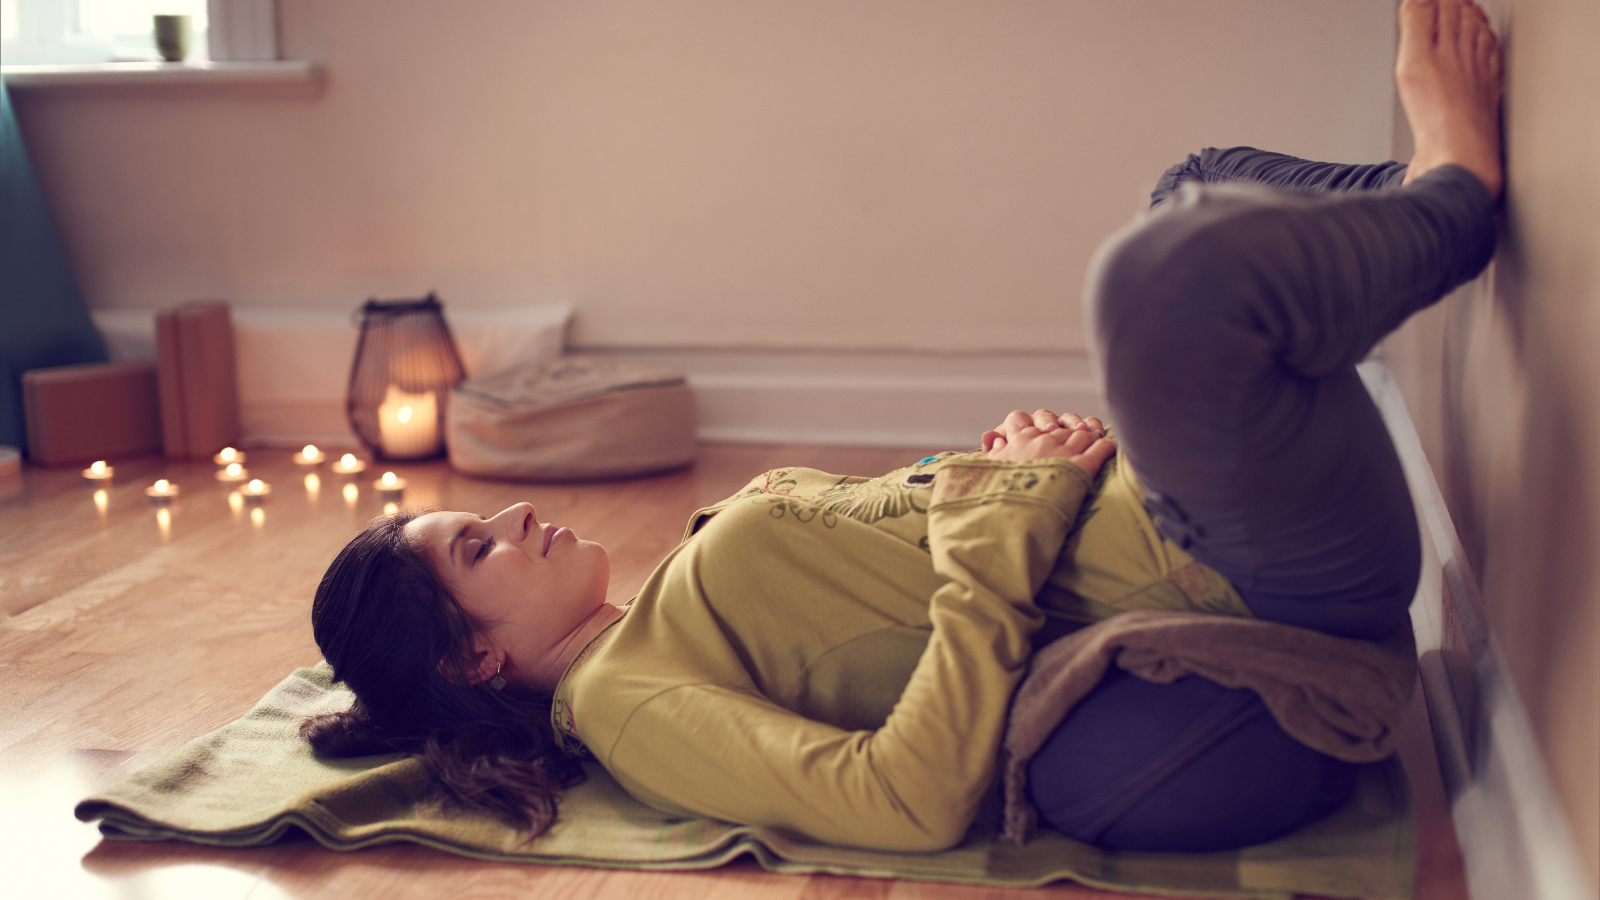 Restorative Yoga is an activity that will help prepare your body for sleep